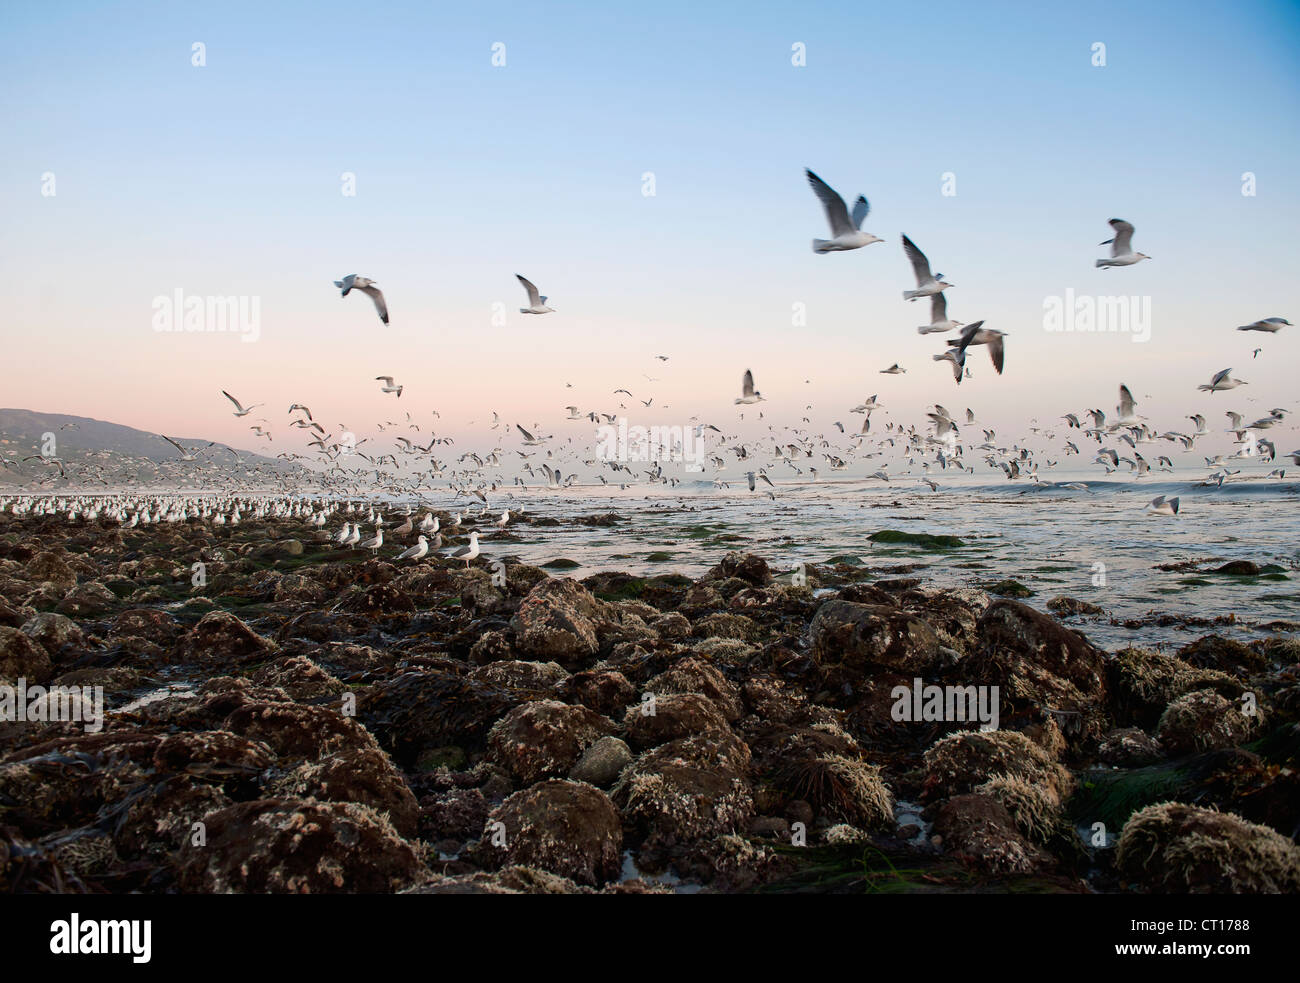 Seagulls flying over rocky beach - Stock Image